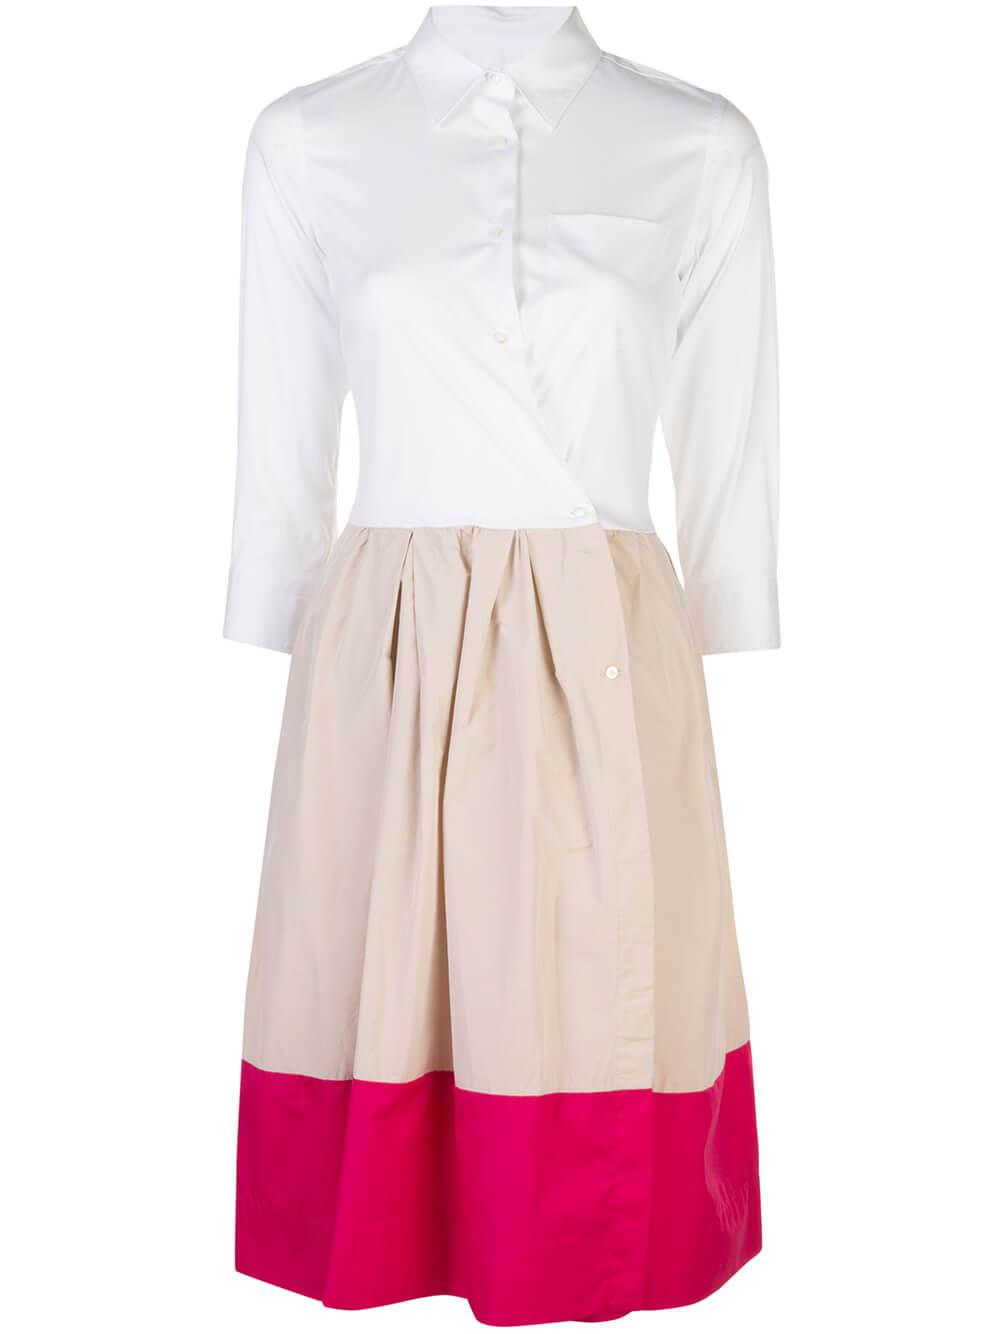 3/4 Sleeve Shirt Dress With Color Block Skirt Item # 8ELTRI64-1